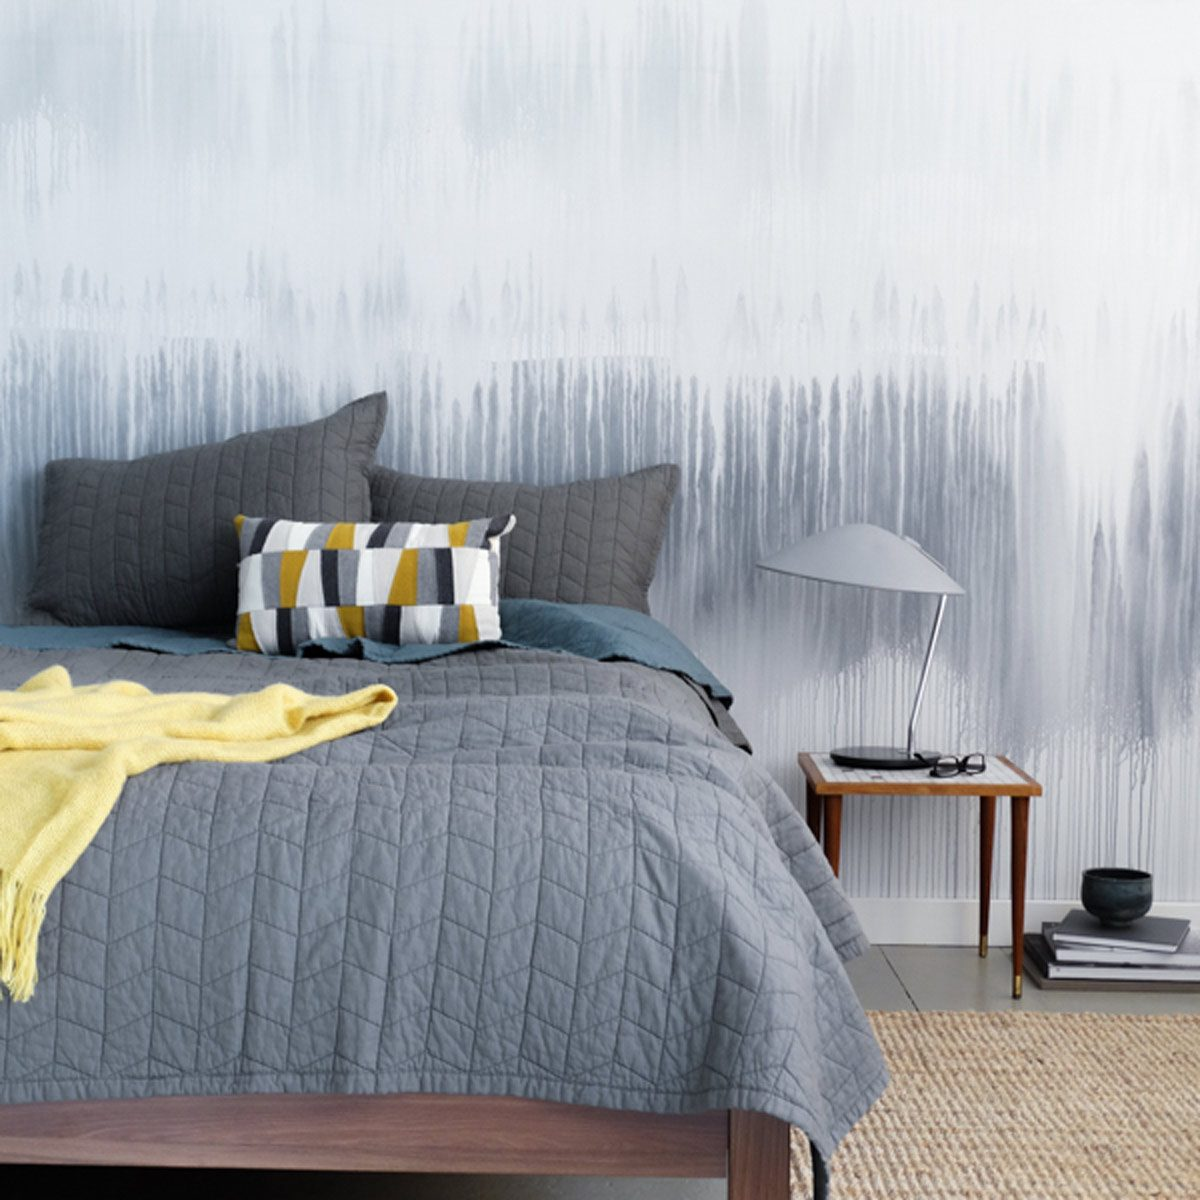 Watercolor,wall painting,wayfair wall paintings,buy art online,wayfair wall art,interior house painters,creative wall painting techniques,saatchi art,artwork for walls,prints for sale,wall painting 3d,two toned walls painting ideas,two color wall painting ideas,creative wall painting techniques,cool paint techniques for walls,interior wall painting ideas,living room wall painting ideas,home interior painting ideas pictures,different ways to paint walls,wall painting ideas,wall painting art,wall painting mr brainwash,18 genius ideas to decorate boring walls,15 different wall painting ideas,4 wall painting ideas for easy method,wall art